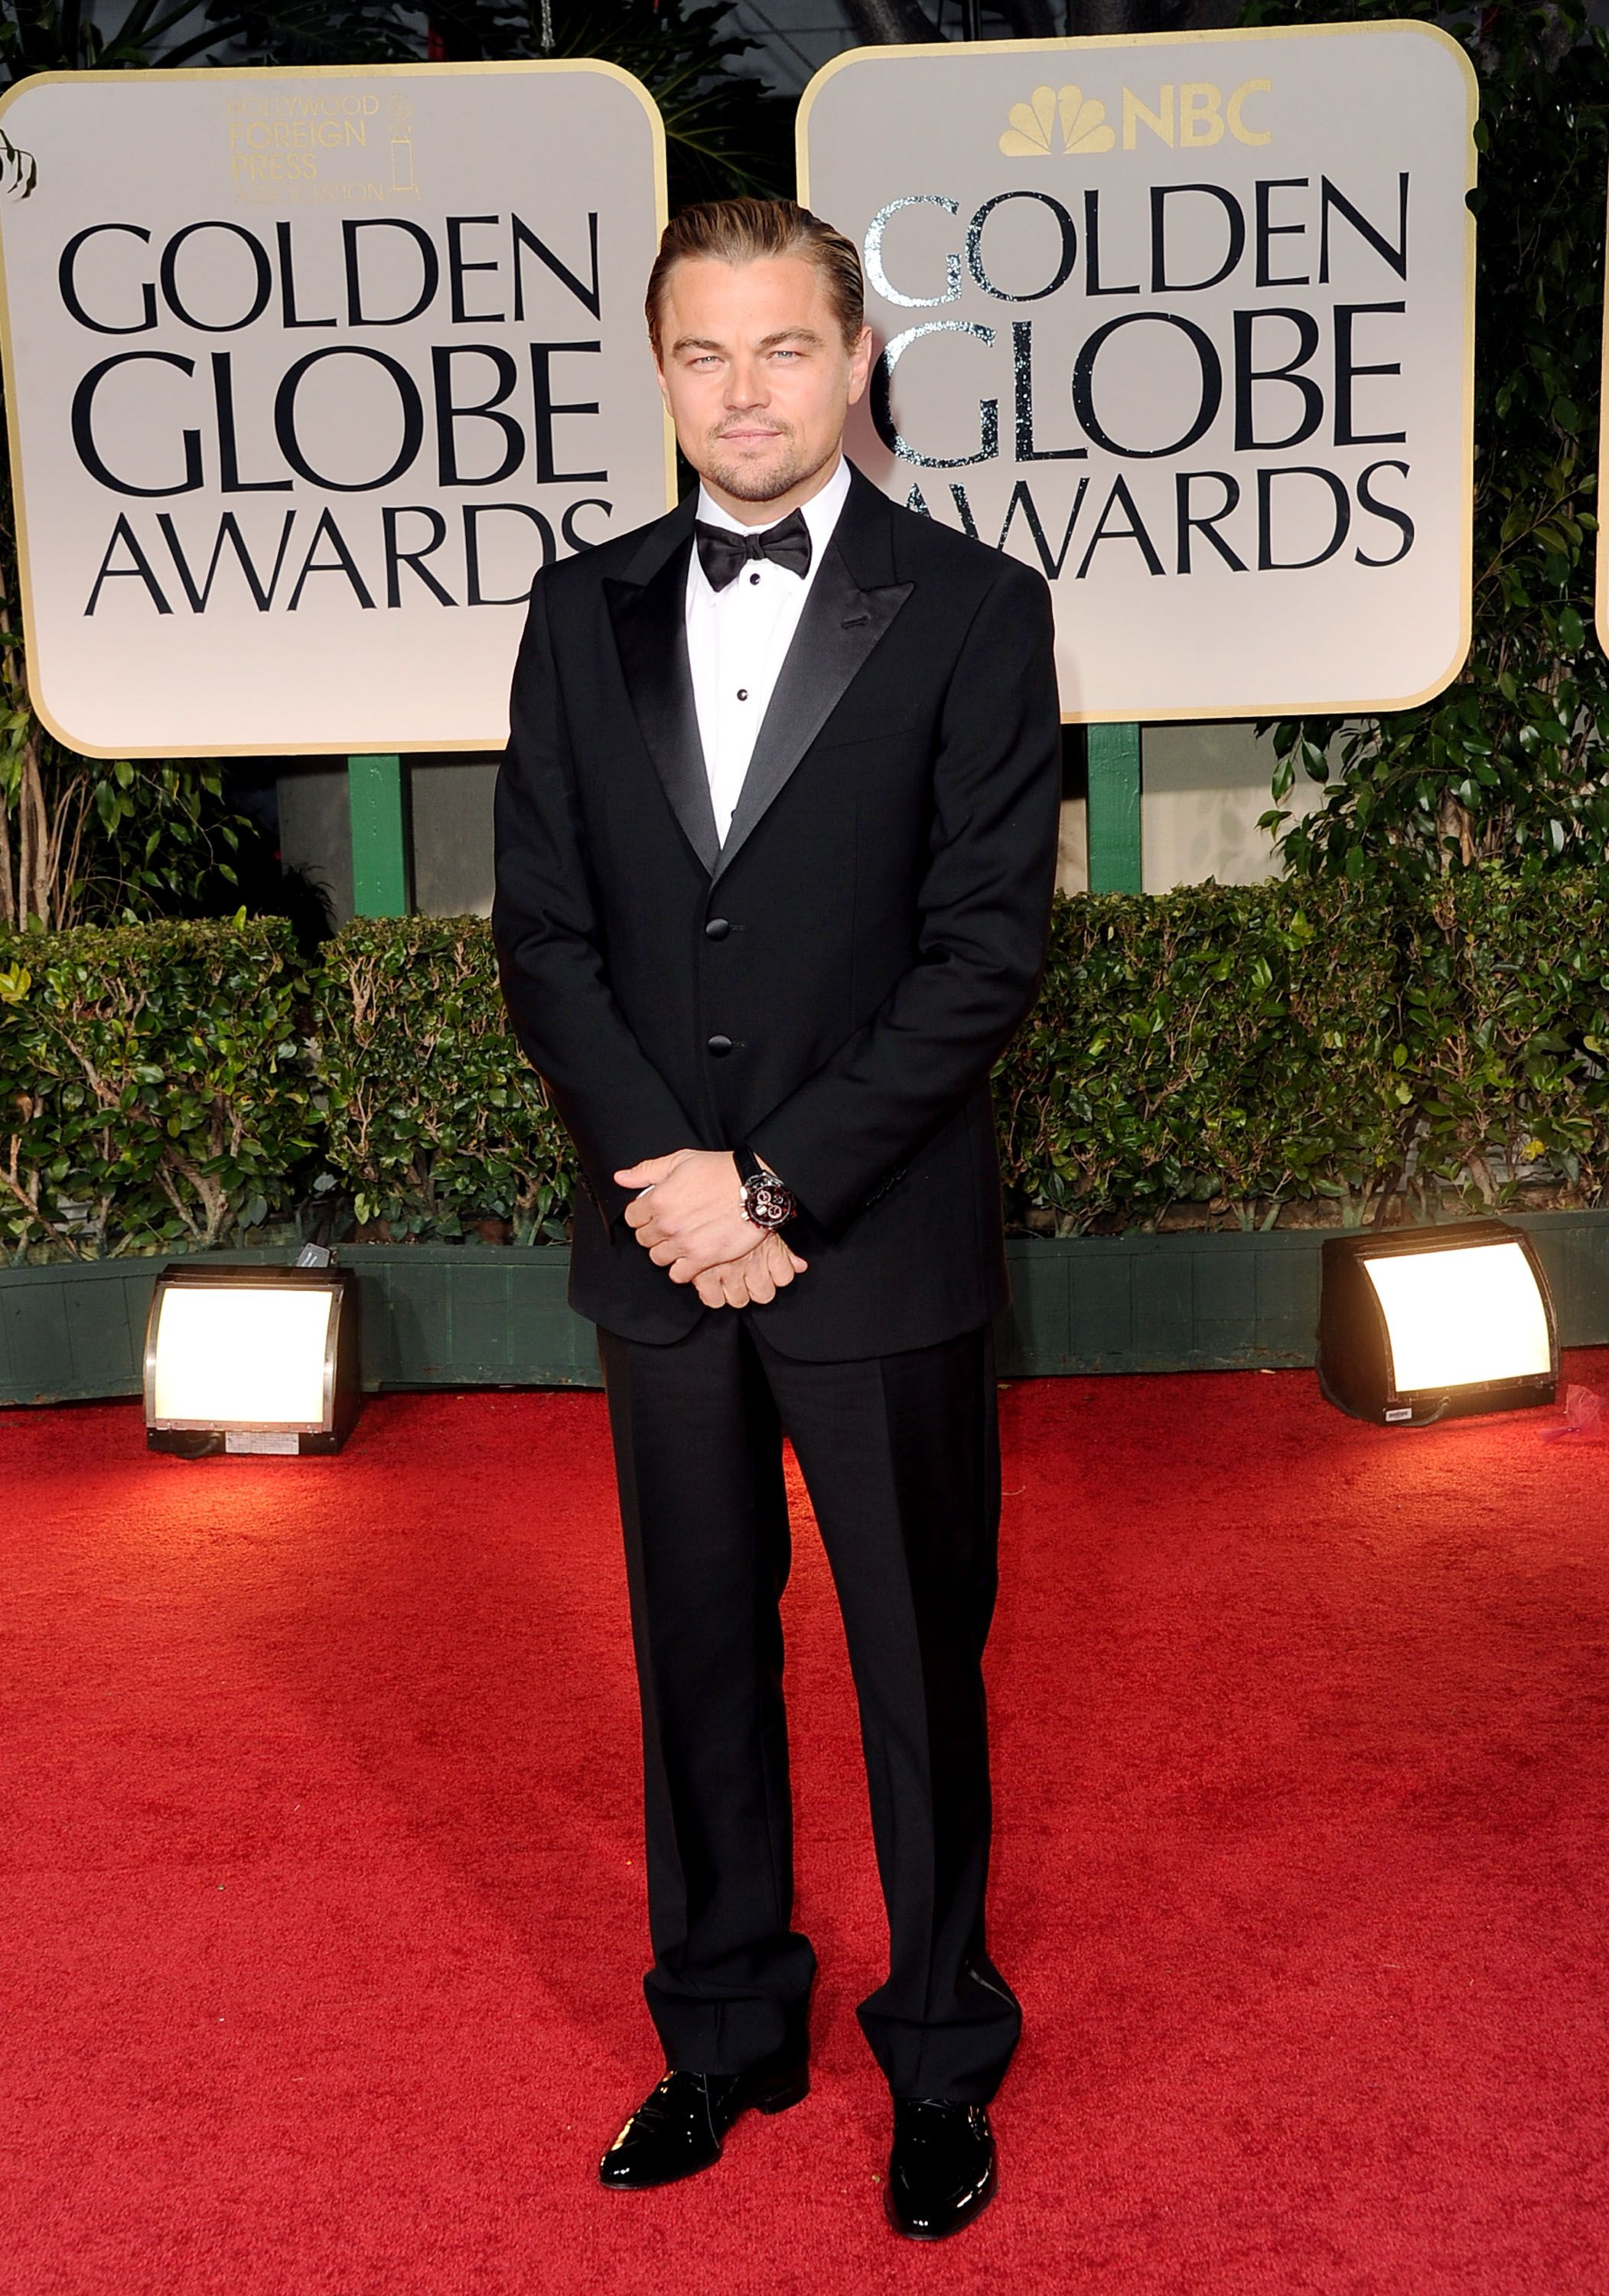 BEVERLY HILLS, CA - JANUARY 15: Actor Leonardo DiCaprio arrives at the 69th Annual Golden Globe Awards held at the Beverly Hilton Hotel on January 15, 2012 in Beverly Hills, California. (Photo by Jason Merritt/Getty Images)